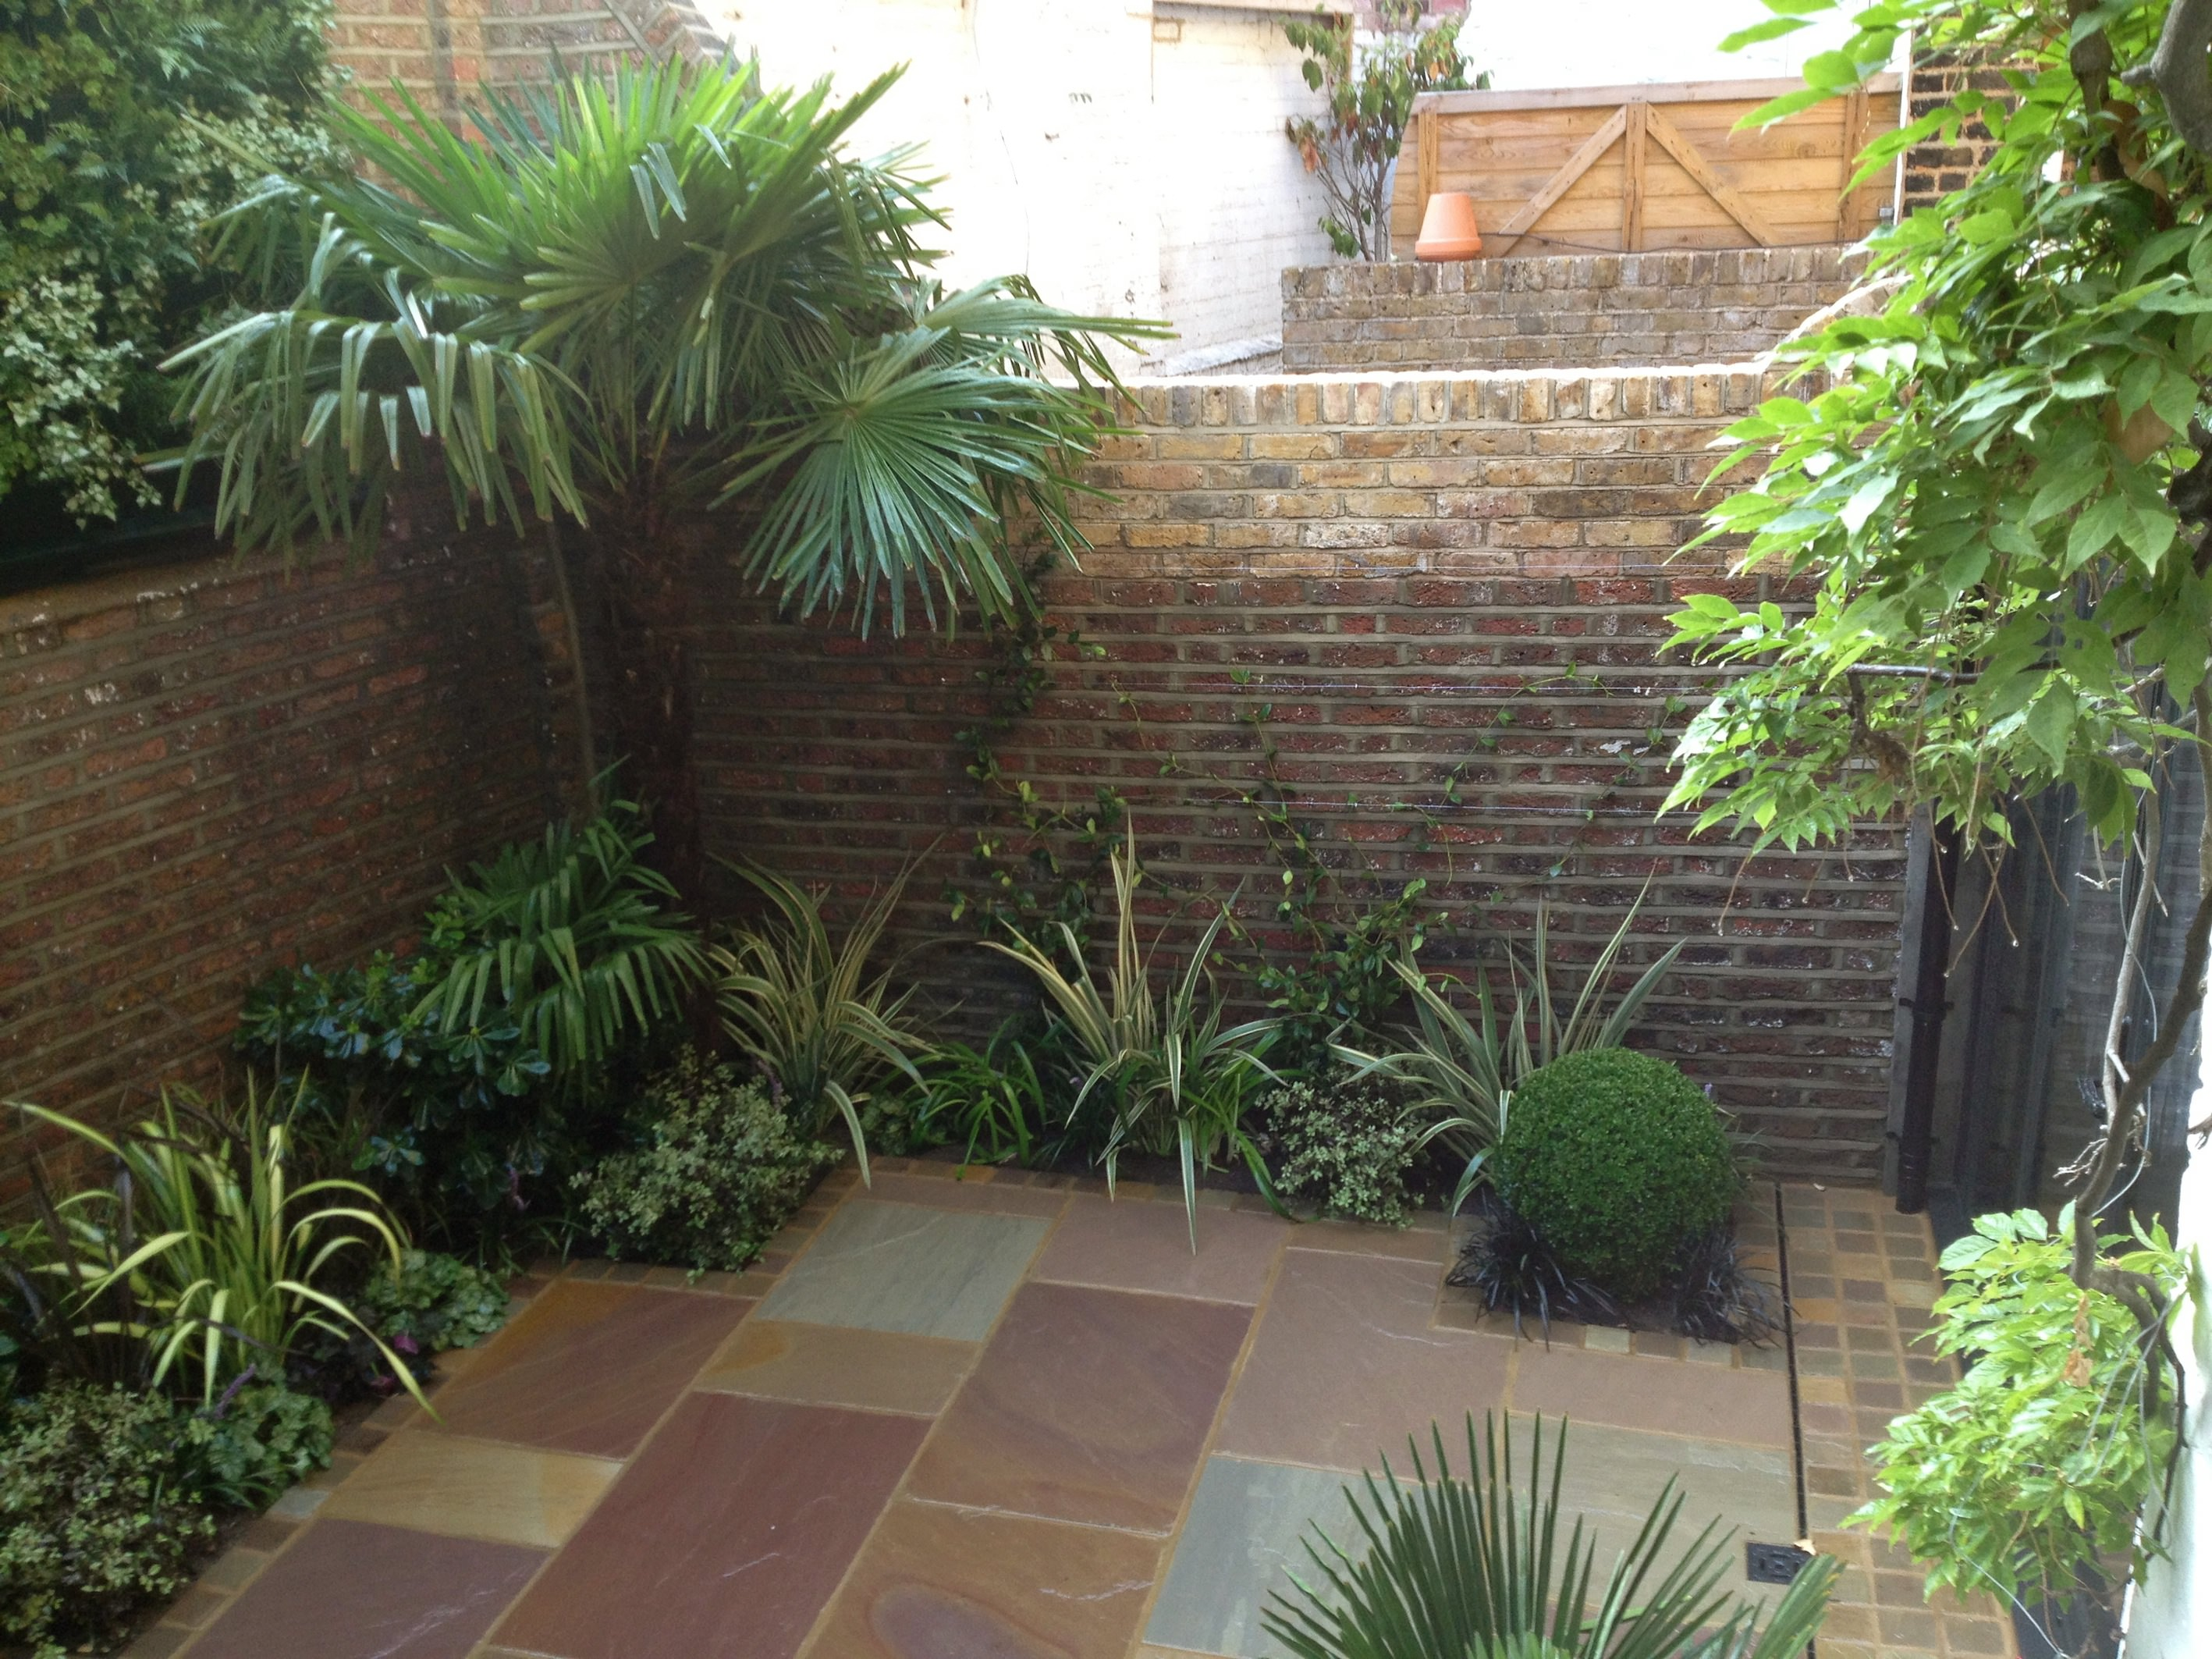 Low maintenance garden designs garden club london for Landscape design london